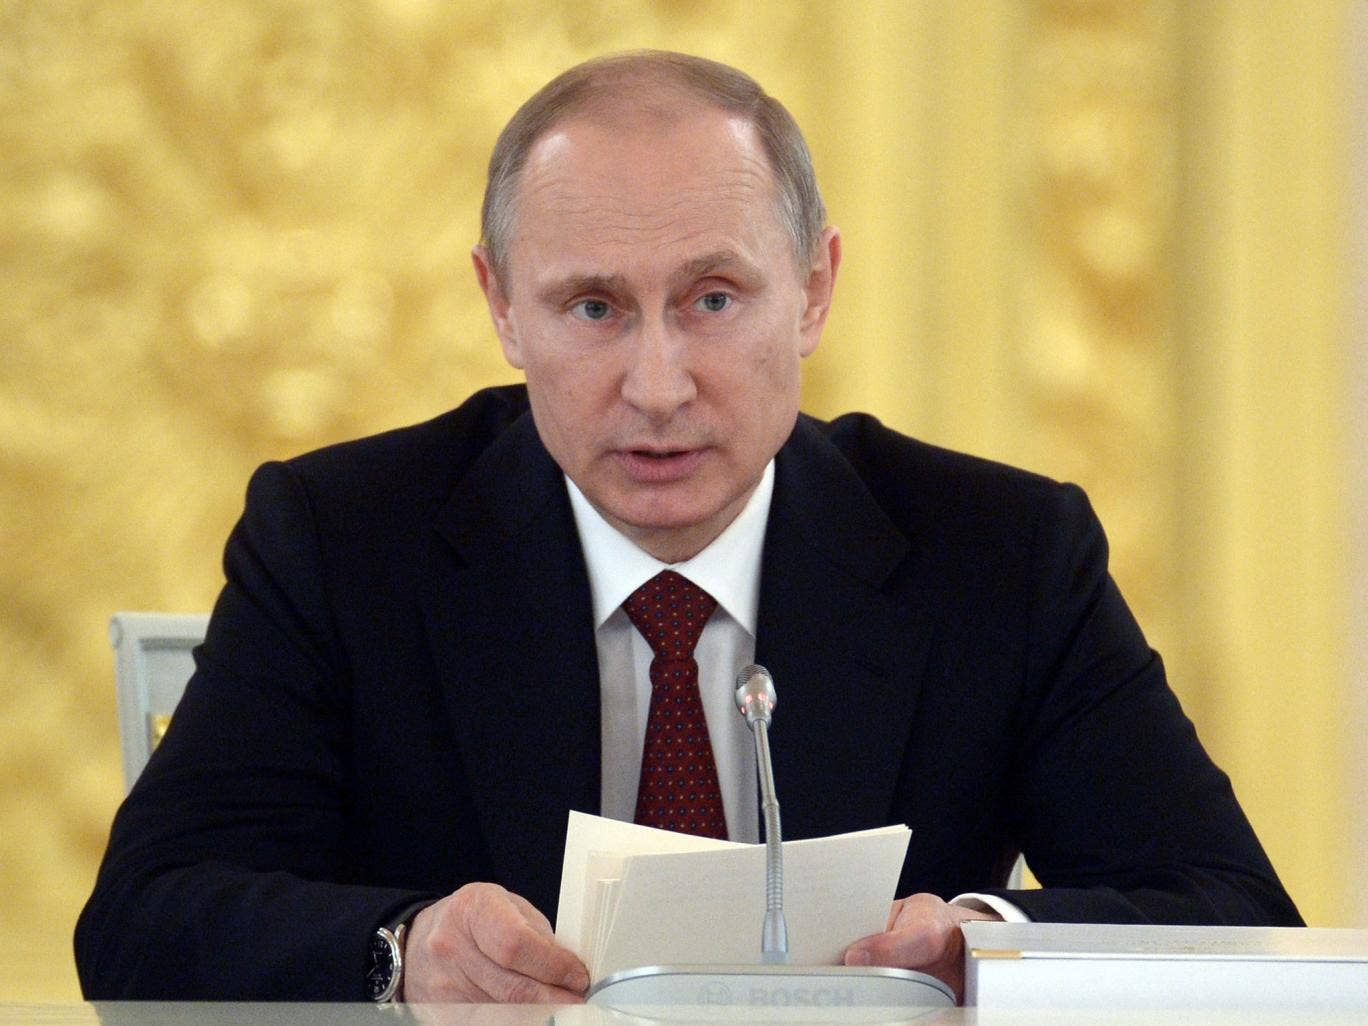 Russian President Vladimir Putin speaks at a government meeting at the Kremlin in Moscow on 24 March, 2014